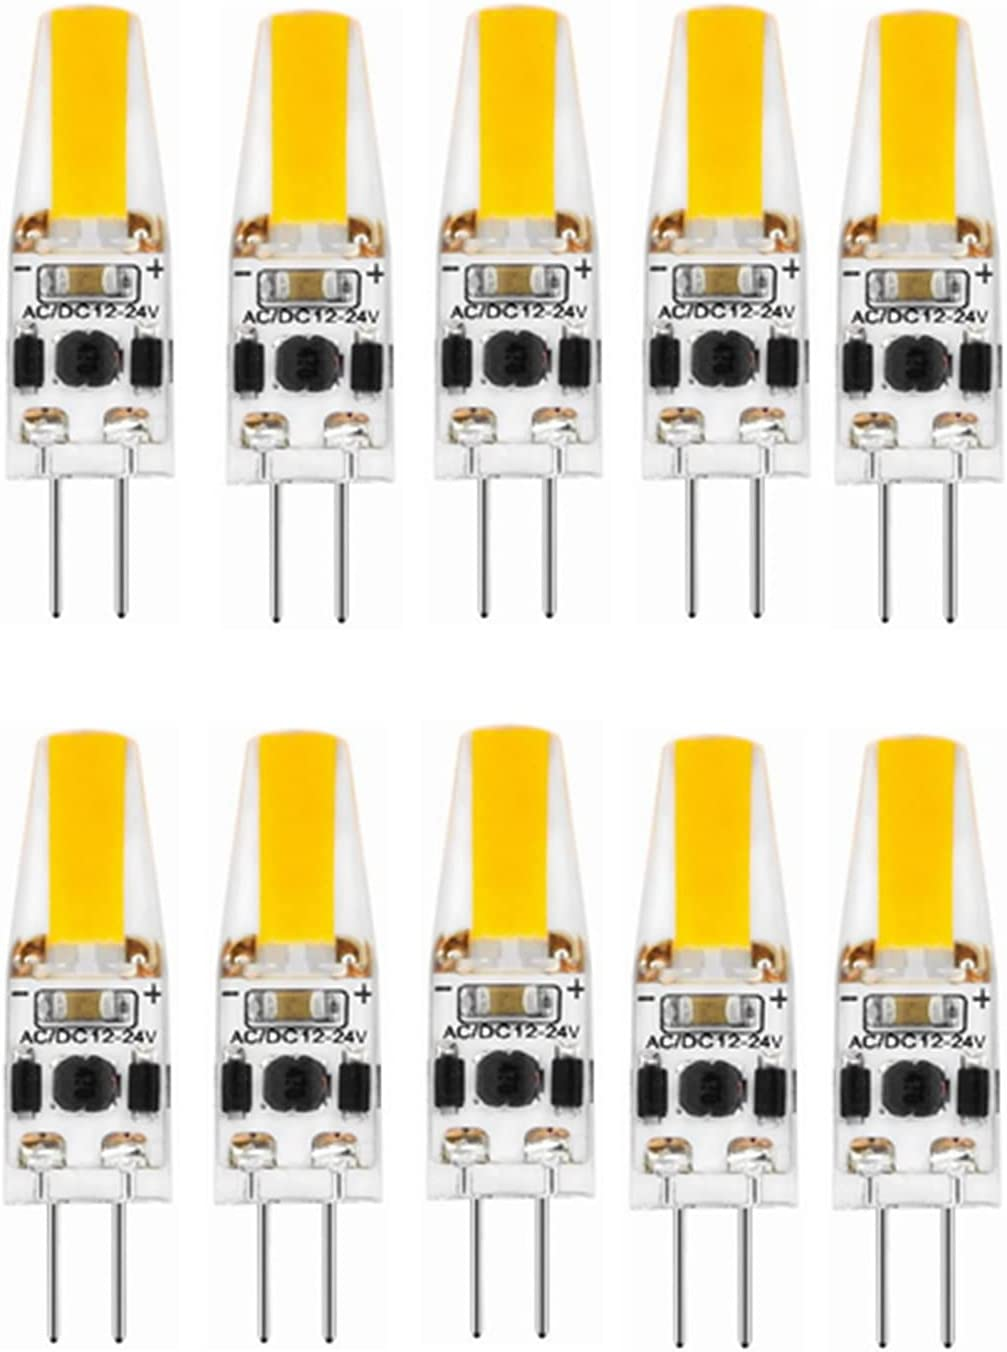 Easy-to-use Industrial Light Bulb 10pcs LED Be super welcome G4 Bi-Pin 3W COB Lamp